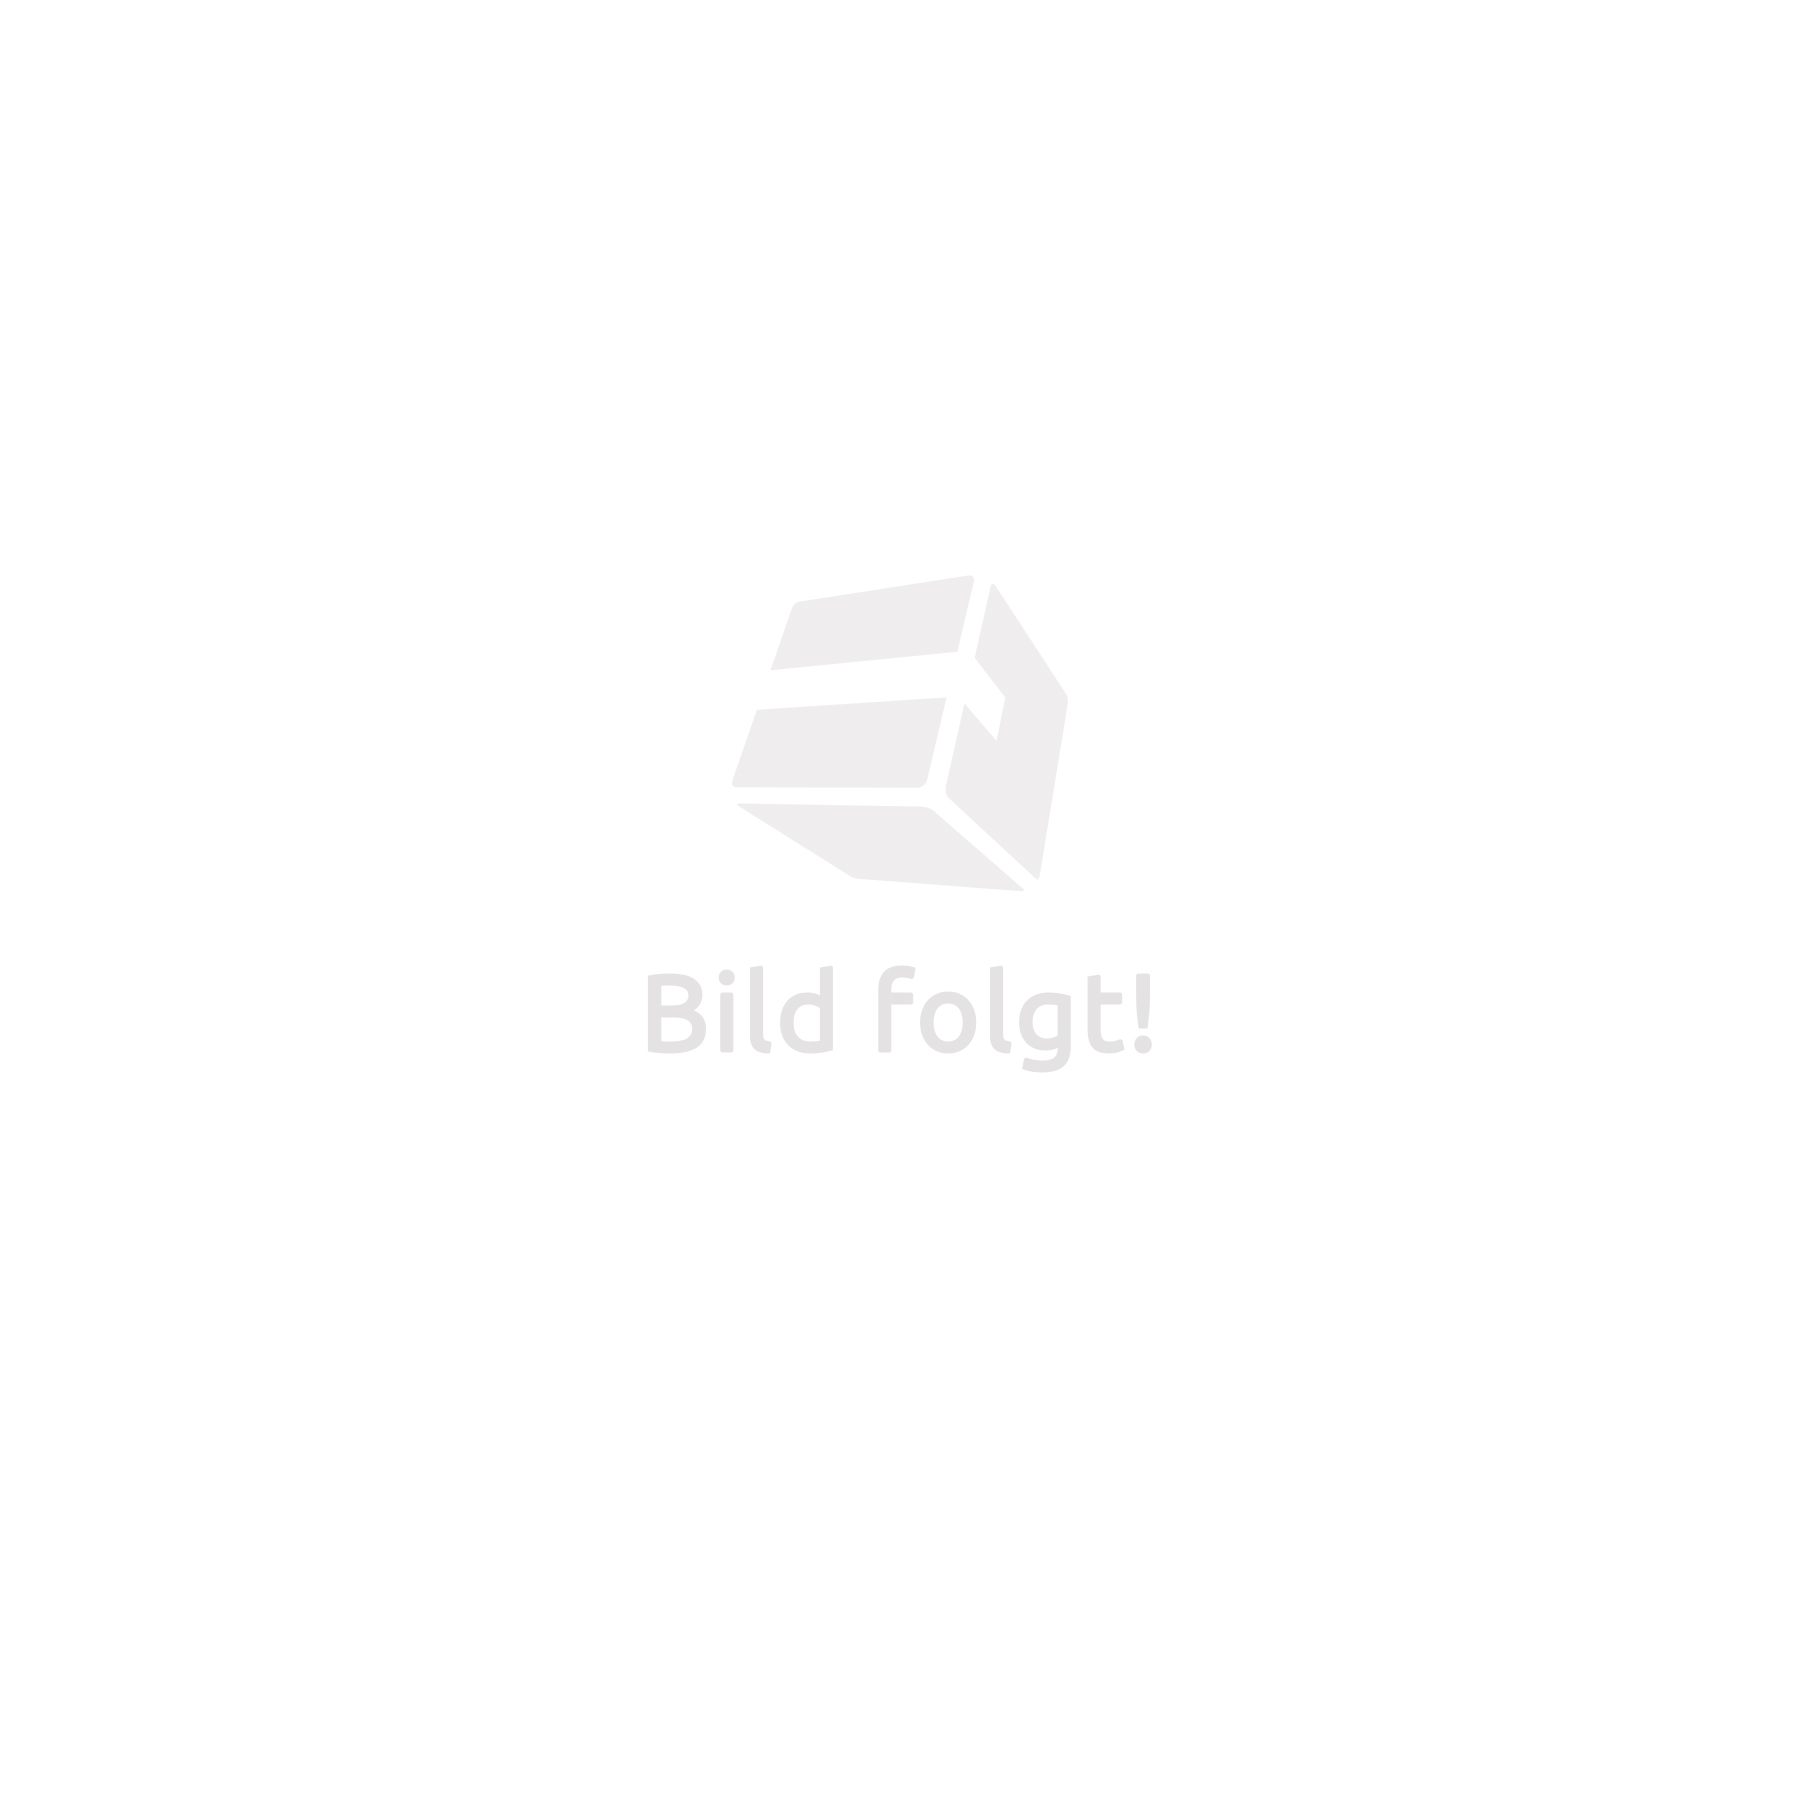 New 84 Hd Projection Screen 152x152cm Home Cinema 4 3